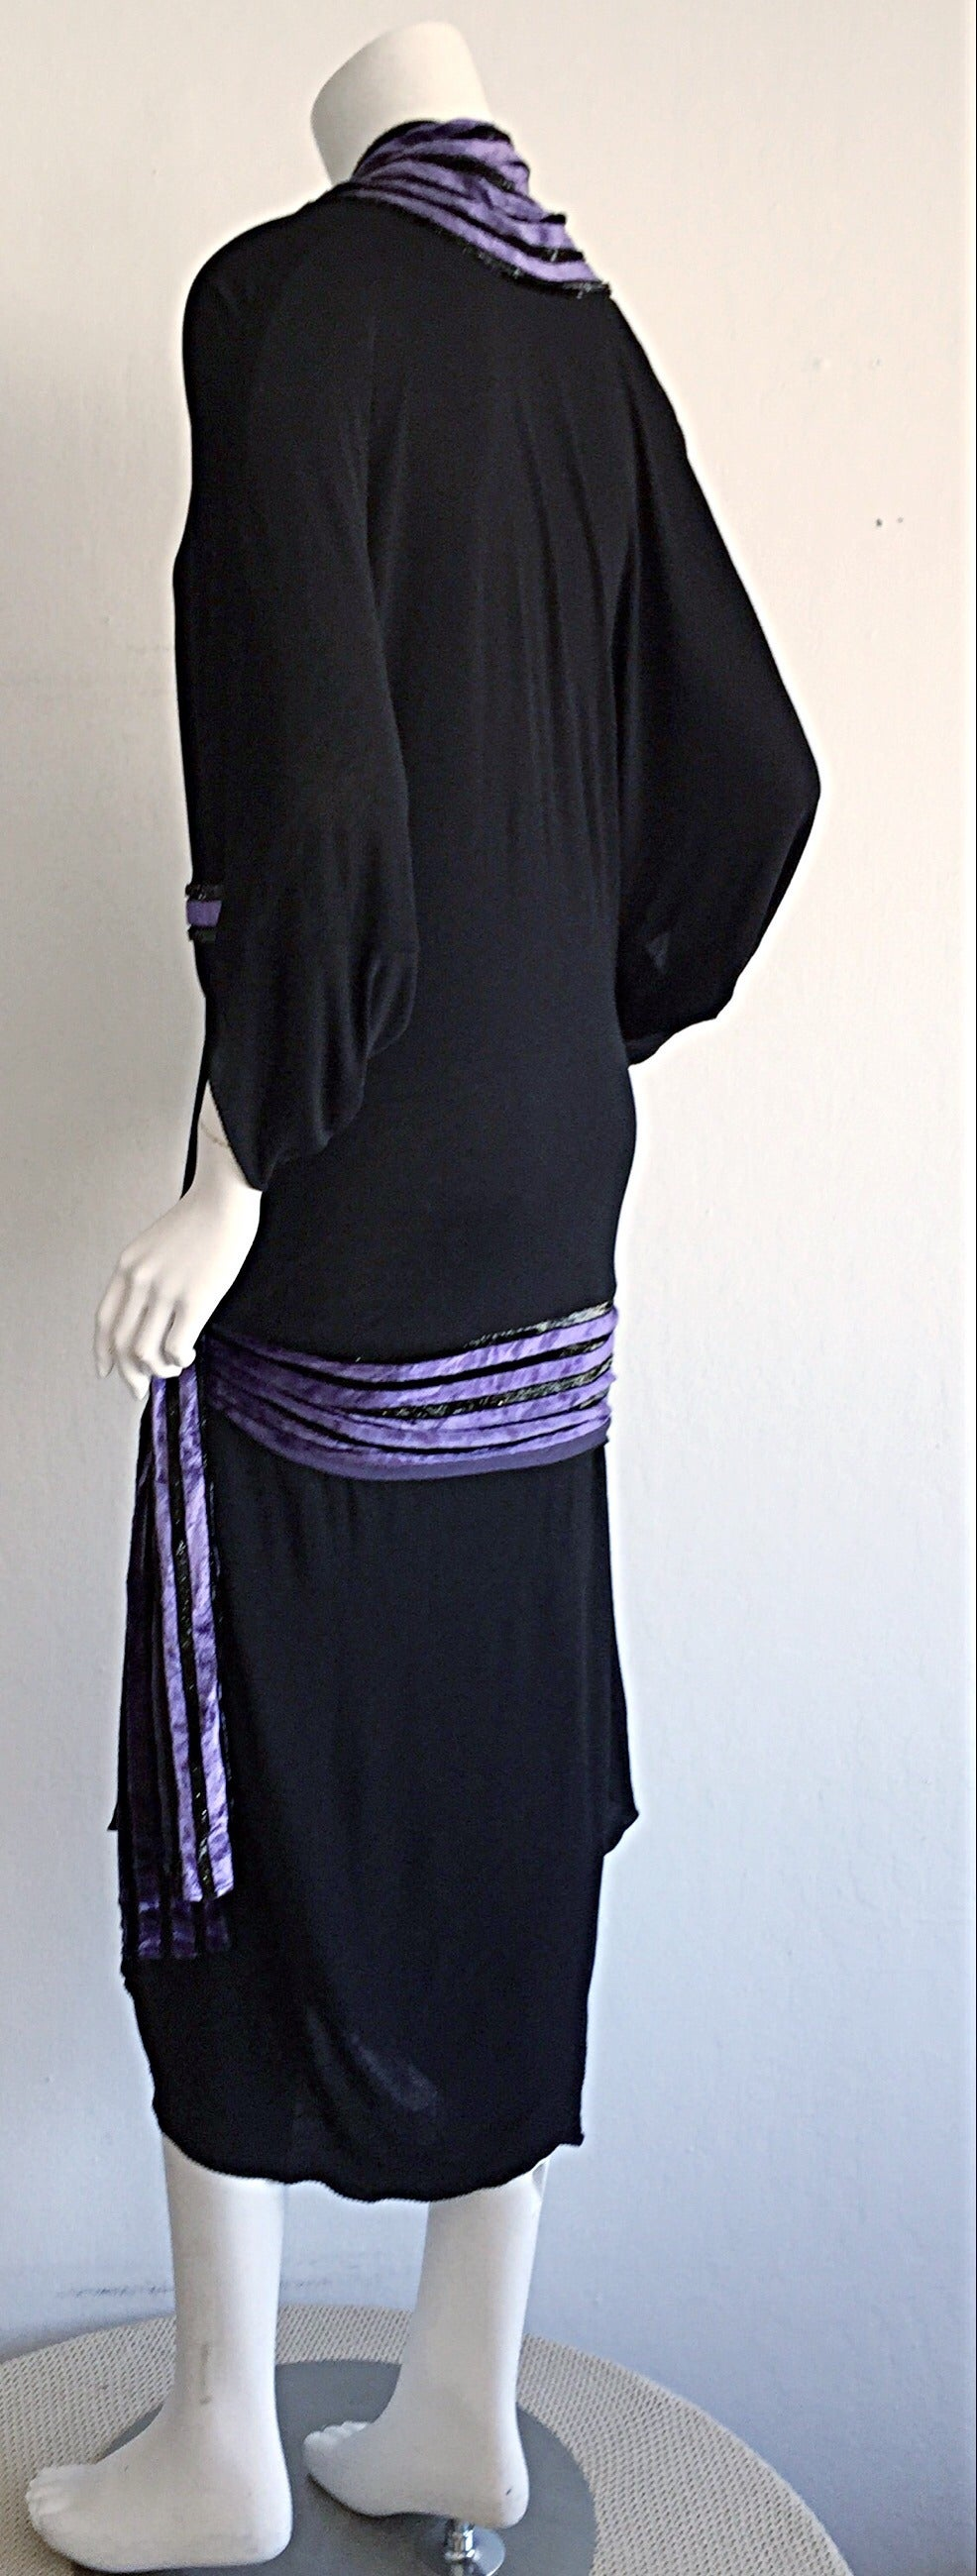 """Iconic Vintage Janice Wainwright Black Flapper Style """" Roaring 20s"""" Jersey Dress For Sale 5"""